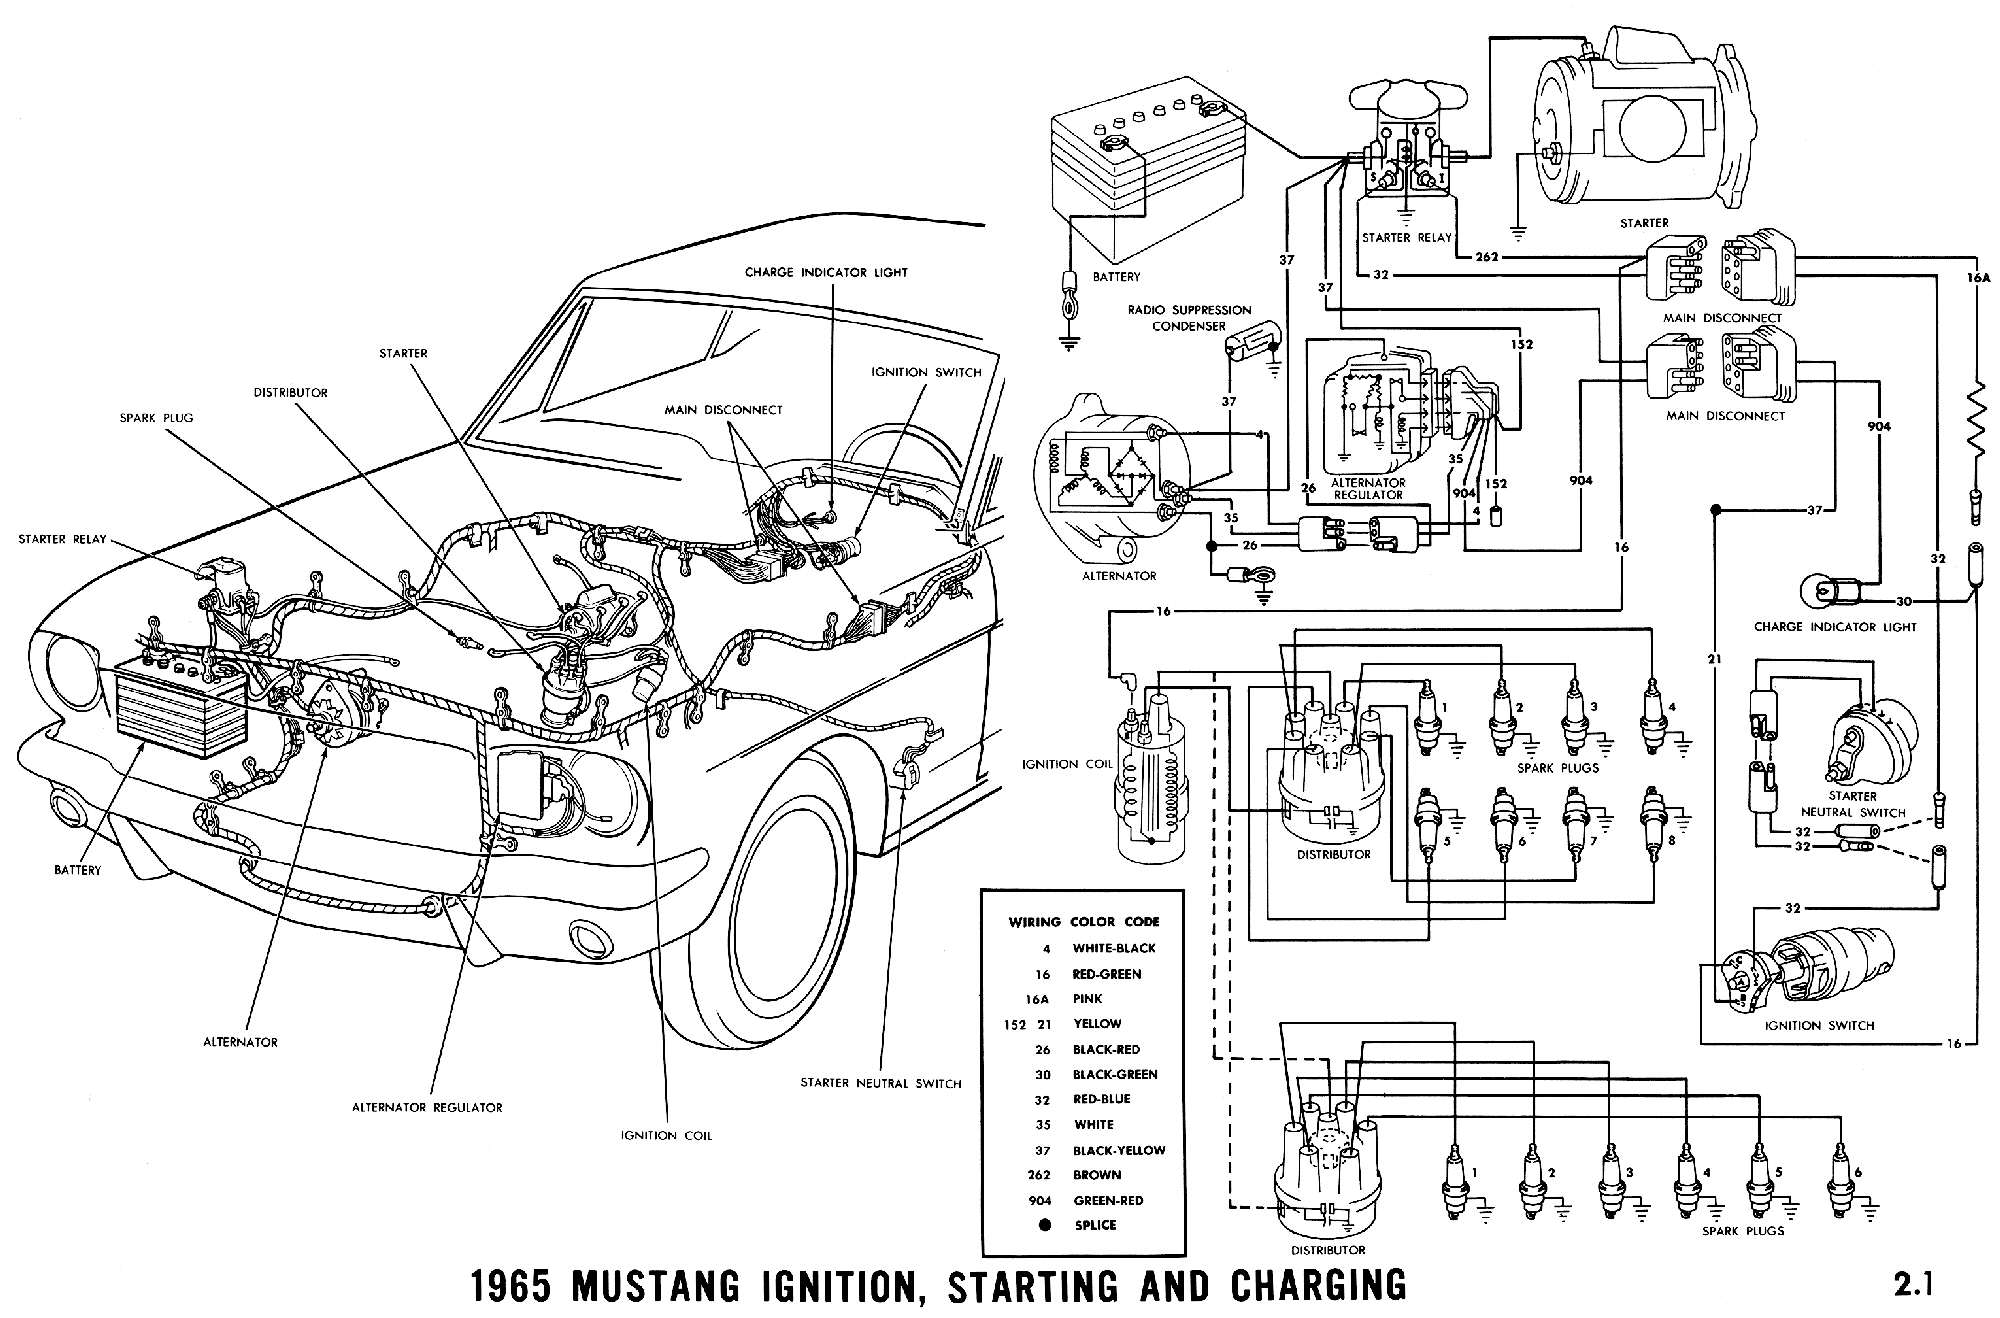 1965 mustang wiring diagrams average joe restoration rh averagejoerestoration com ford mustang parts diagram ford mustang 1966 wiring diagram